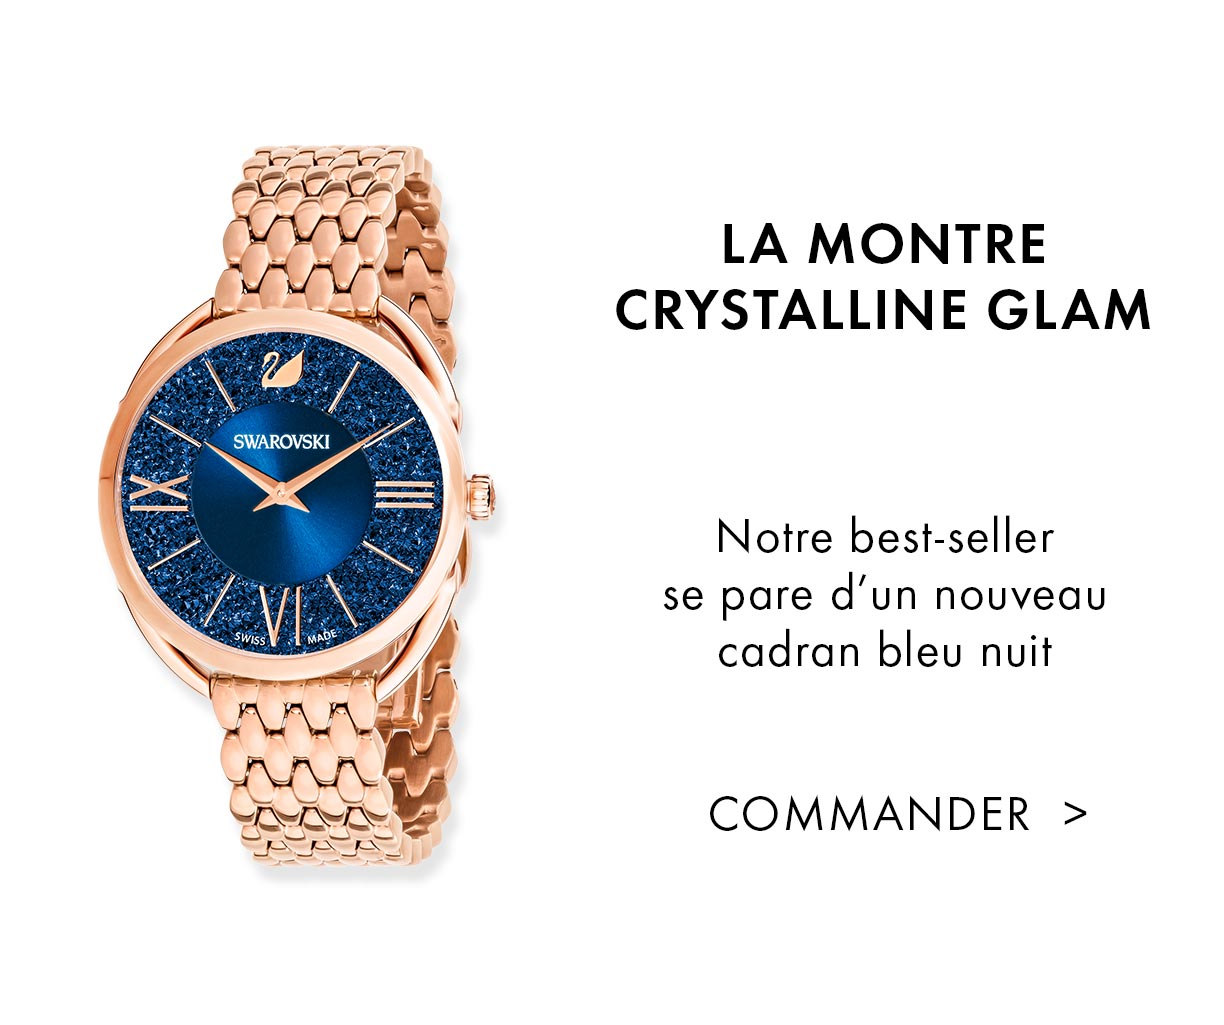 La montre Crystalline Glam